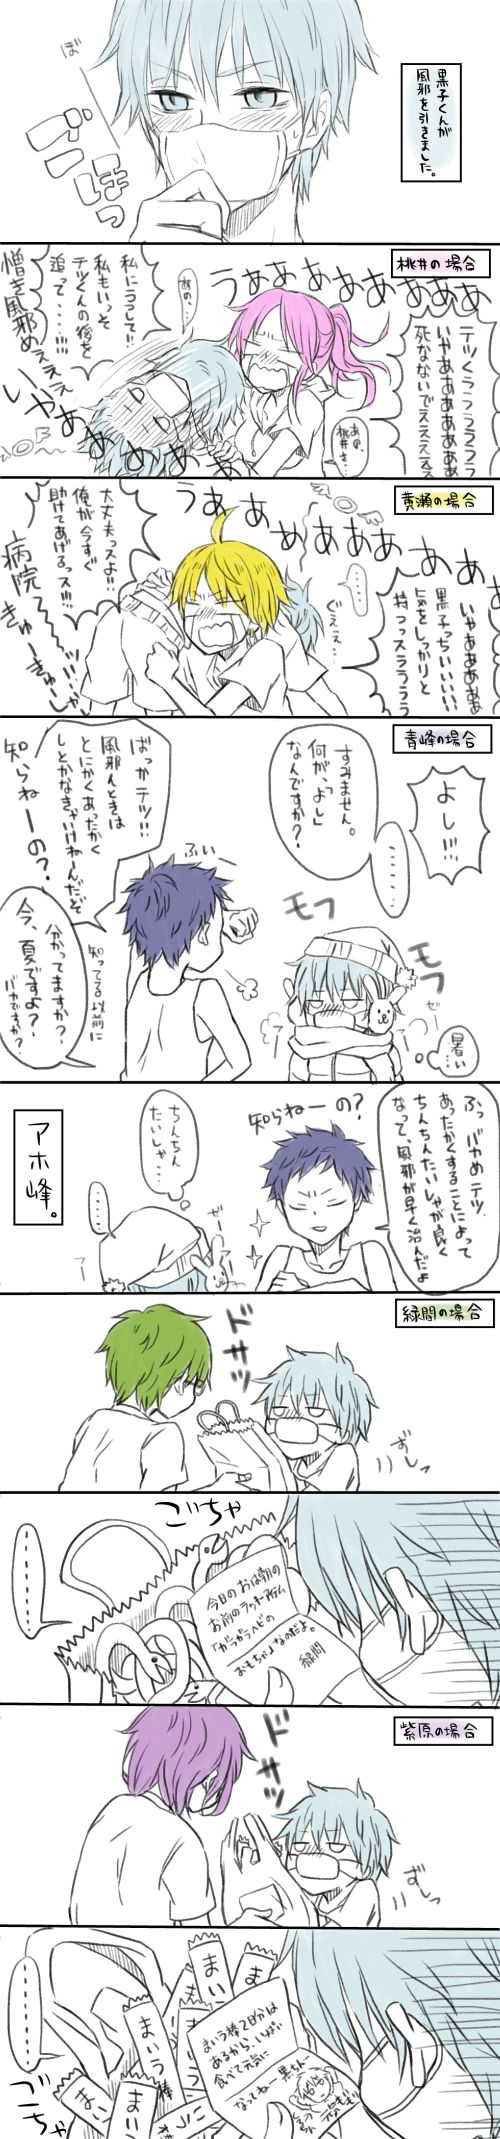 """Kise and momoi panic, Aomines like """"fight on"""", midorima is like """"have this lucky charm of the day to feel better"""" and Murasakibara is like"""" have food, it'll make you feel better"""""""